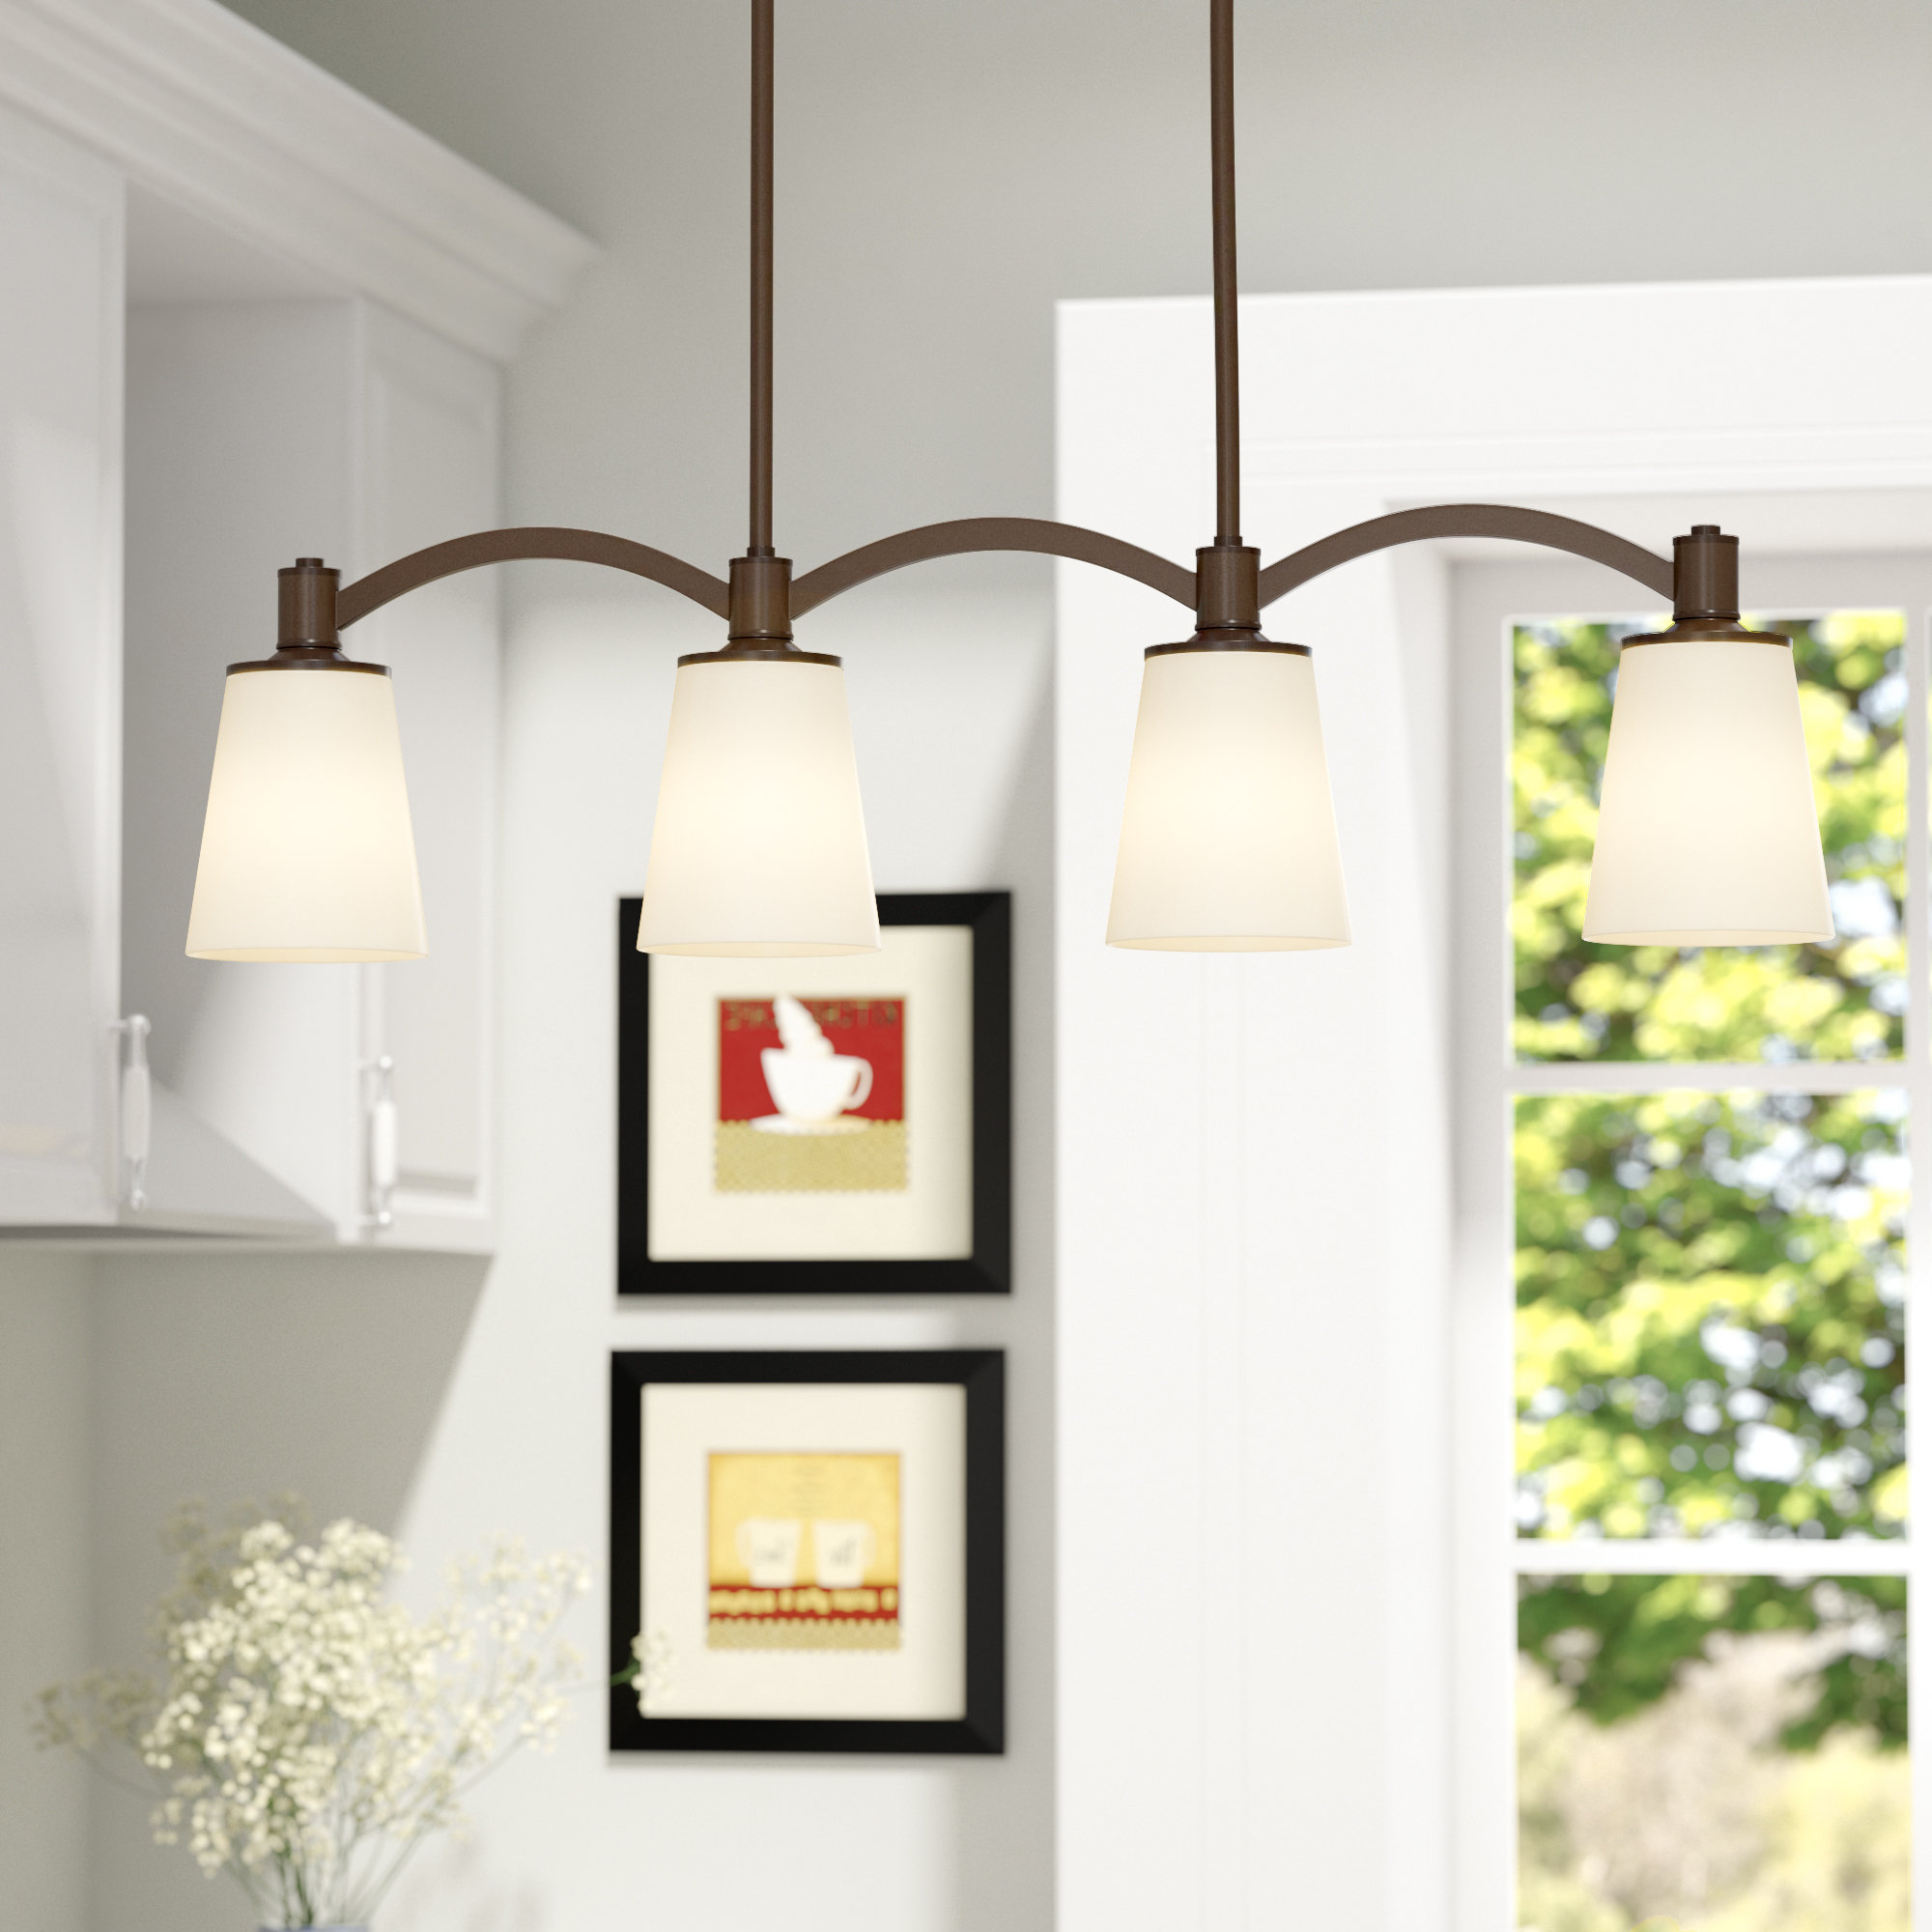 Famous Rockland 4 Light Geometric Pendants For Charlton Home Pendant Lighting You'll Love In  (View 8 of 25)